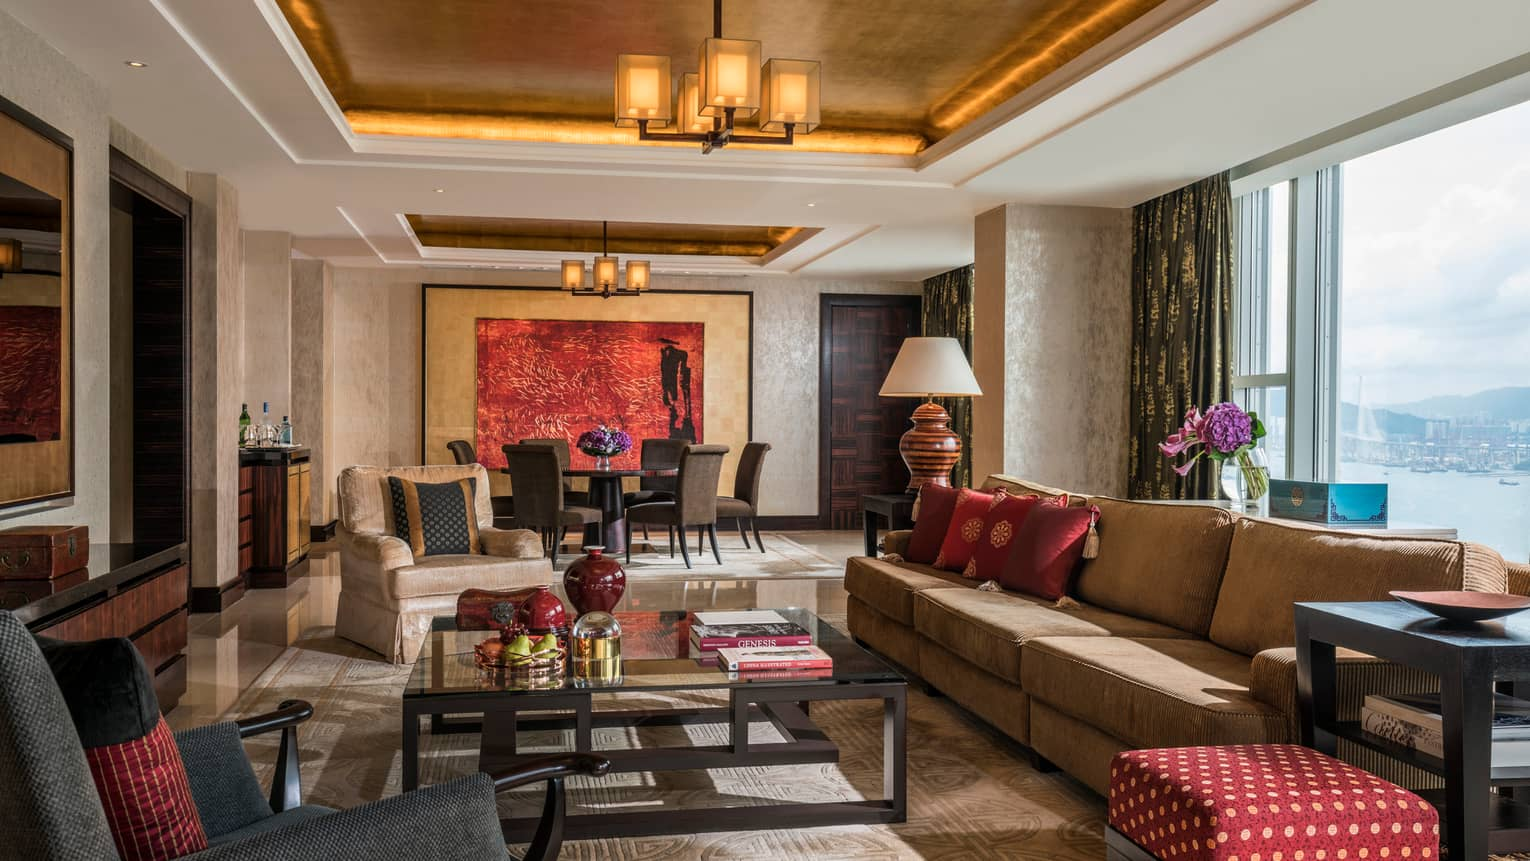 Imperial Suite large living room with plush sofas, armchairs, wall-length window with harbour view